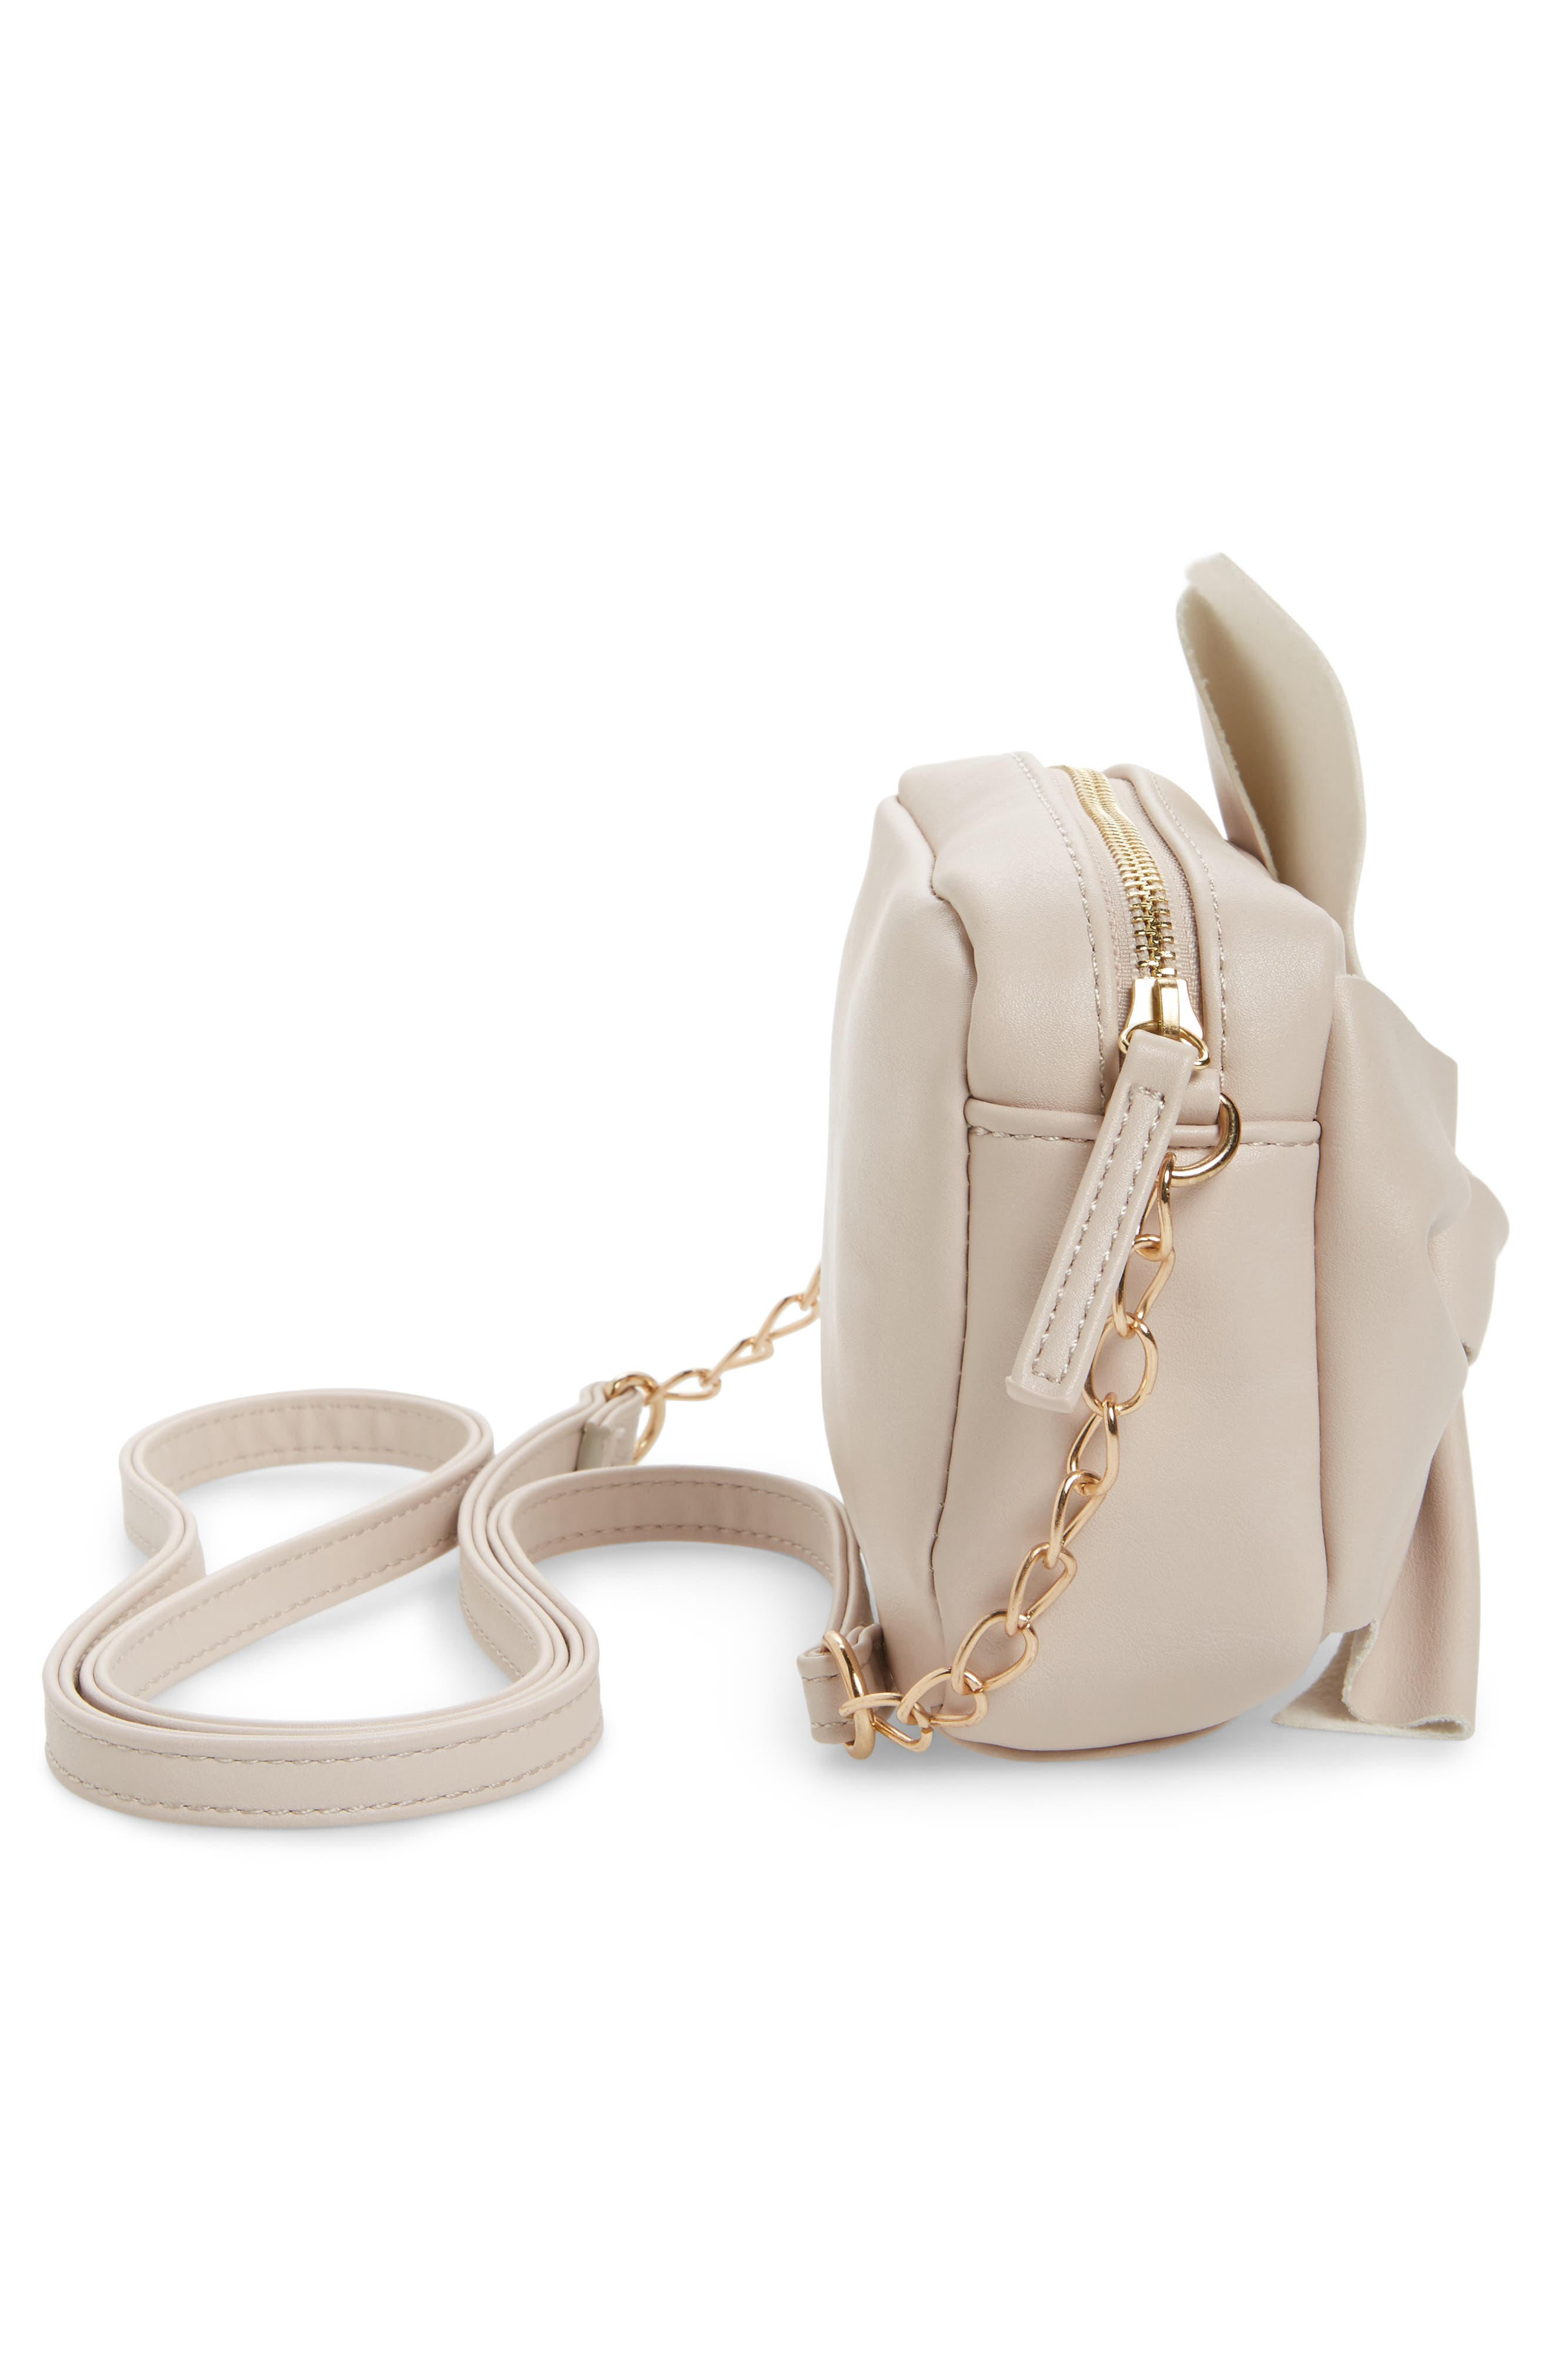 Knotted Bow Faux Leather Crossbody Bag,                             Alternate thumbnail 3, color,                             Blush